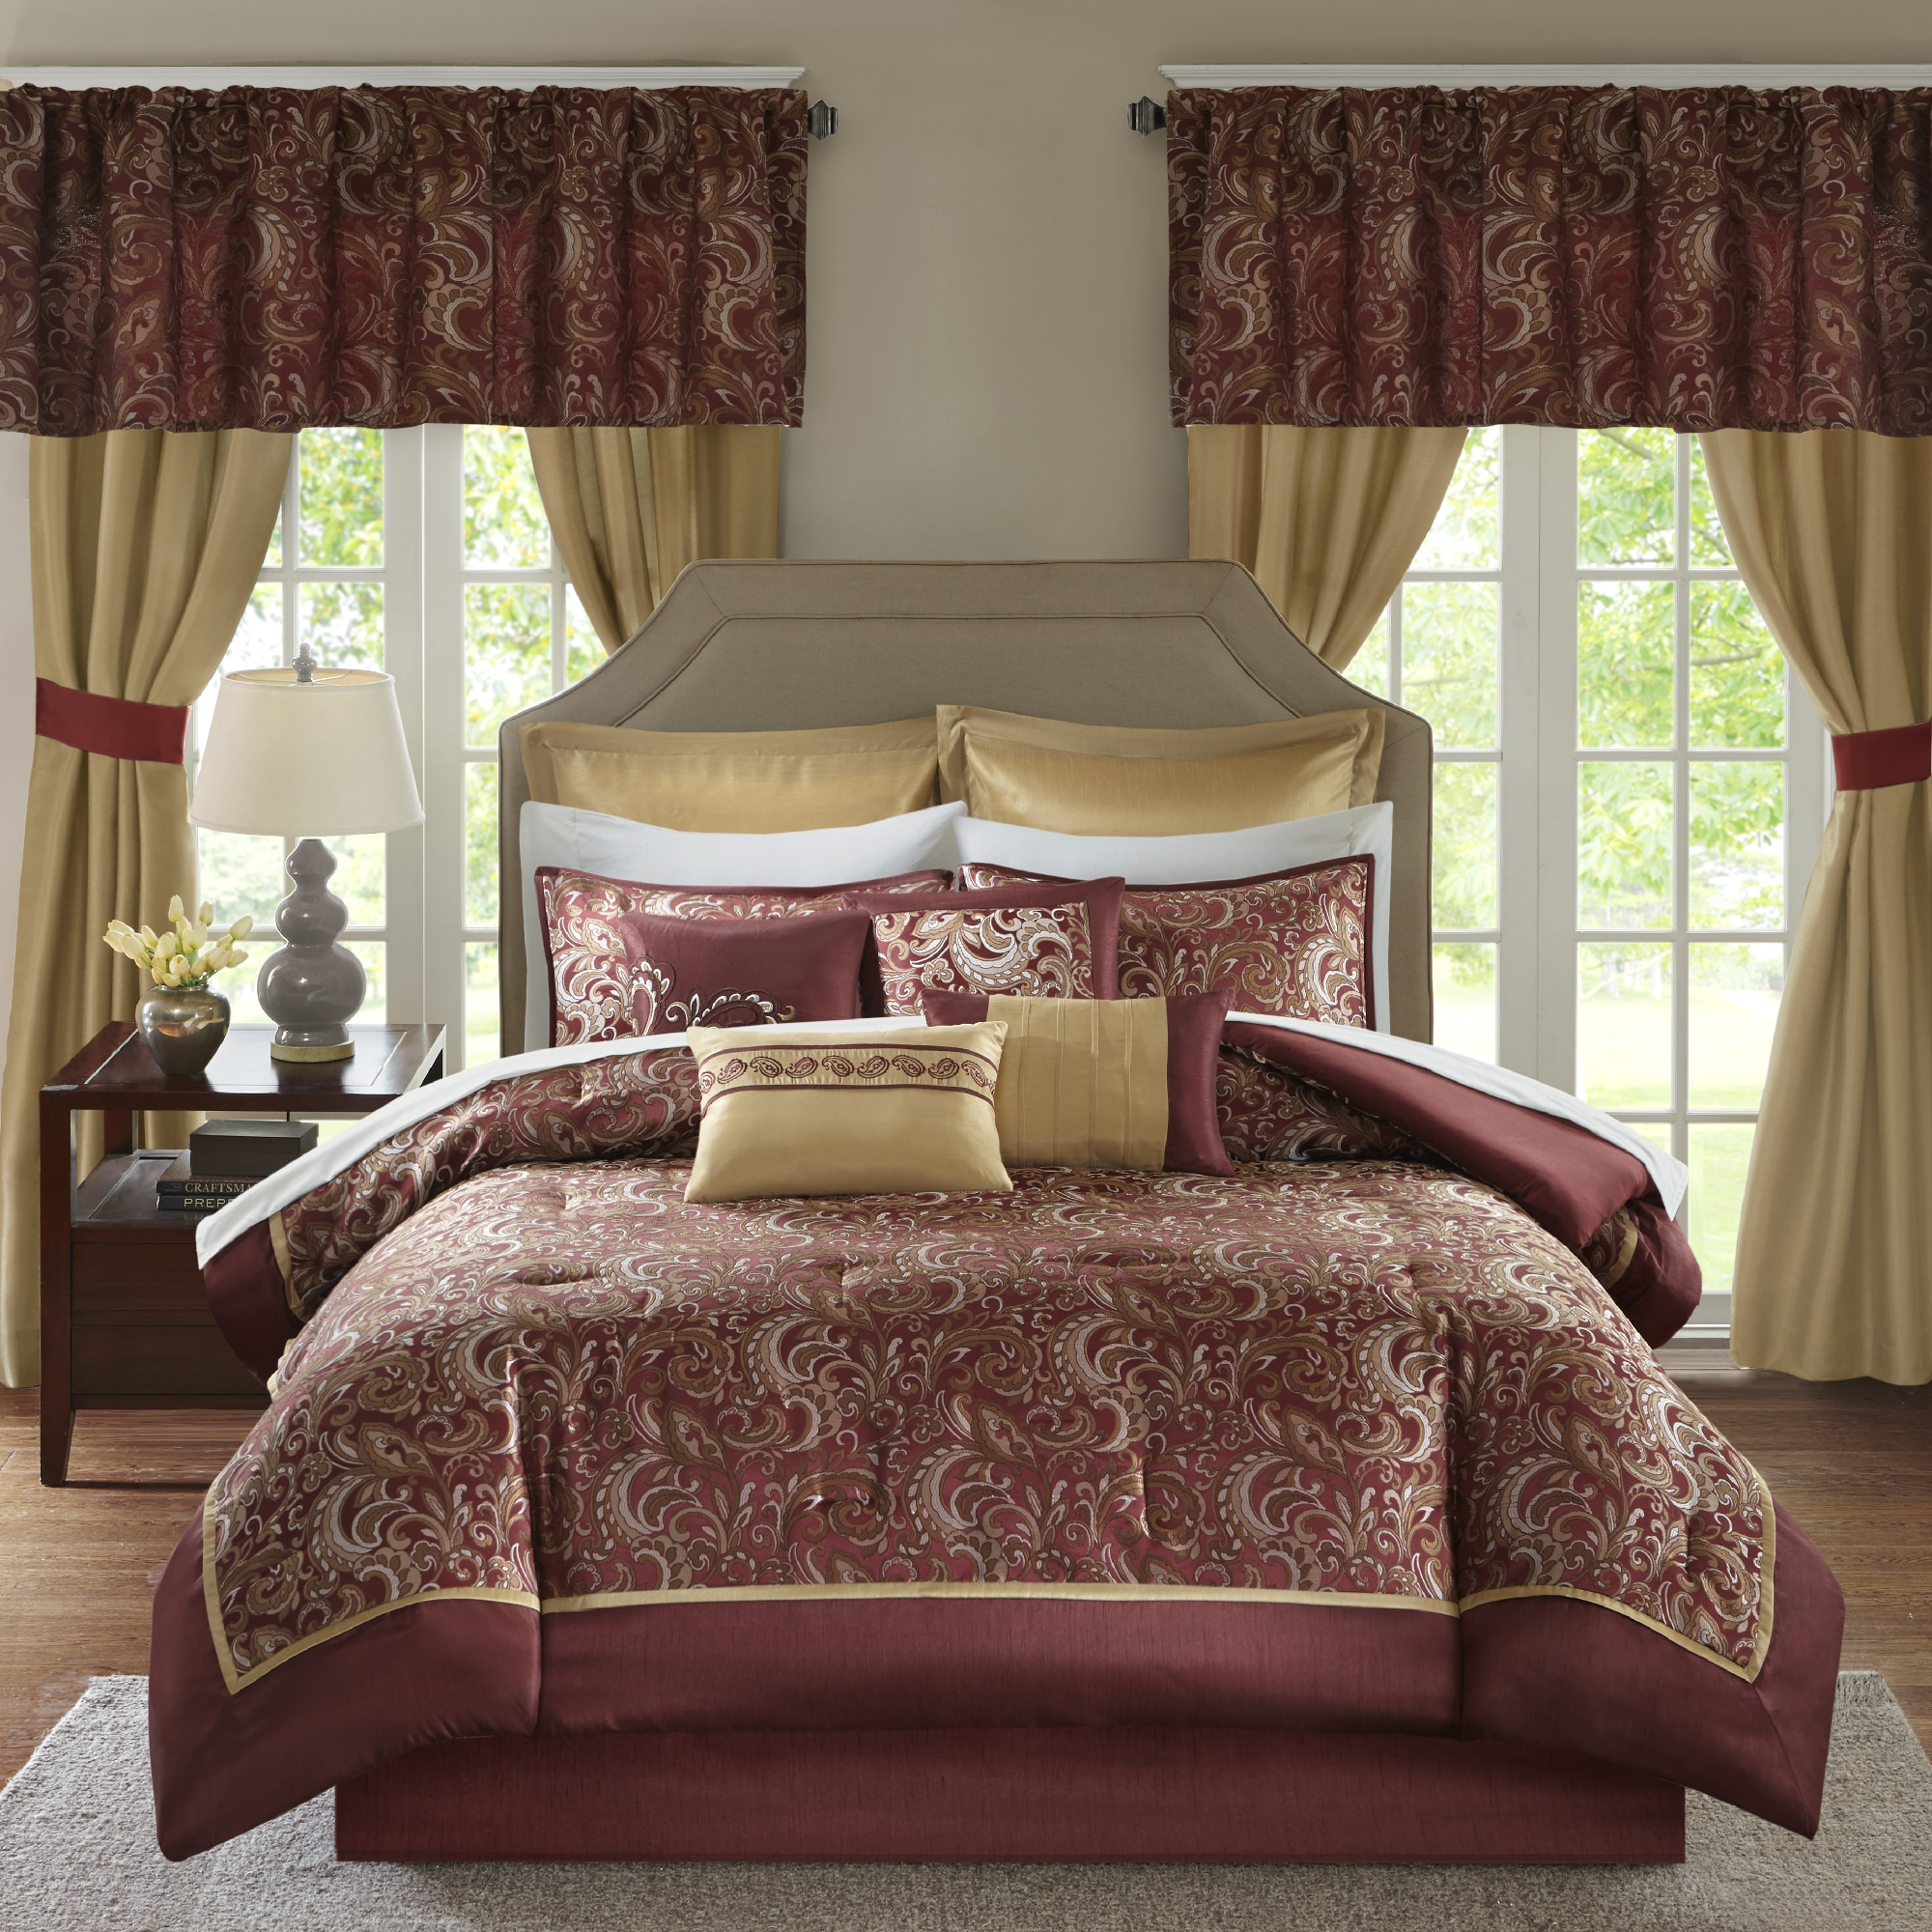 bed style set in burgundy jbff queen count a sets bag with luxury bedding comforter cheap room microfiber sale ease